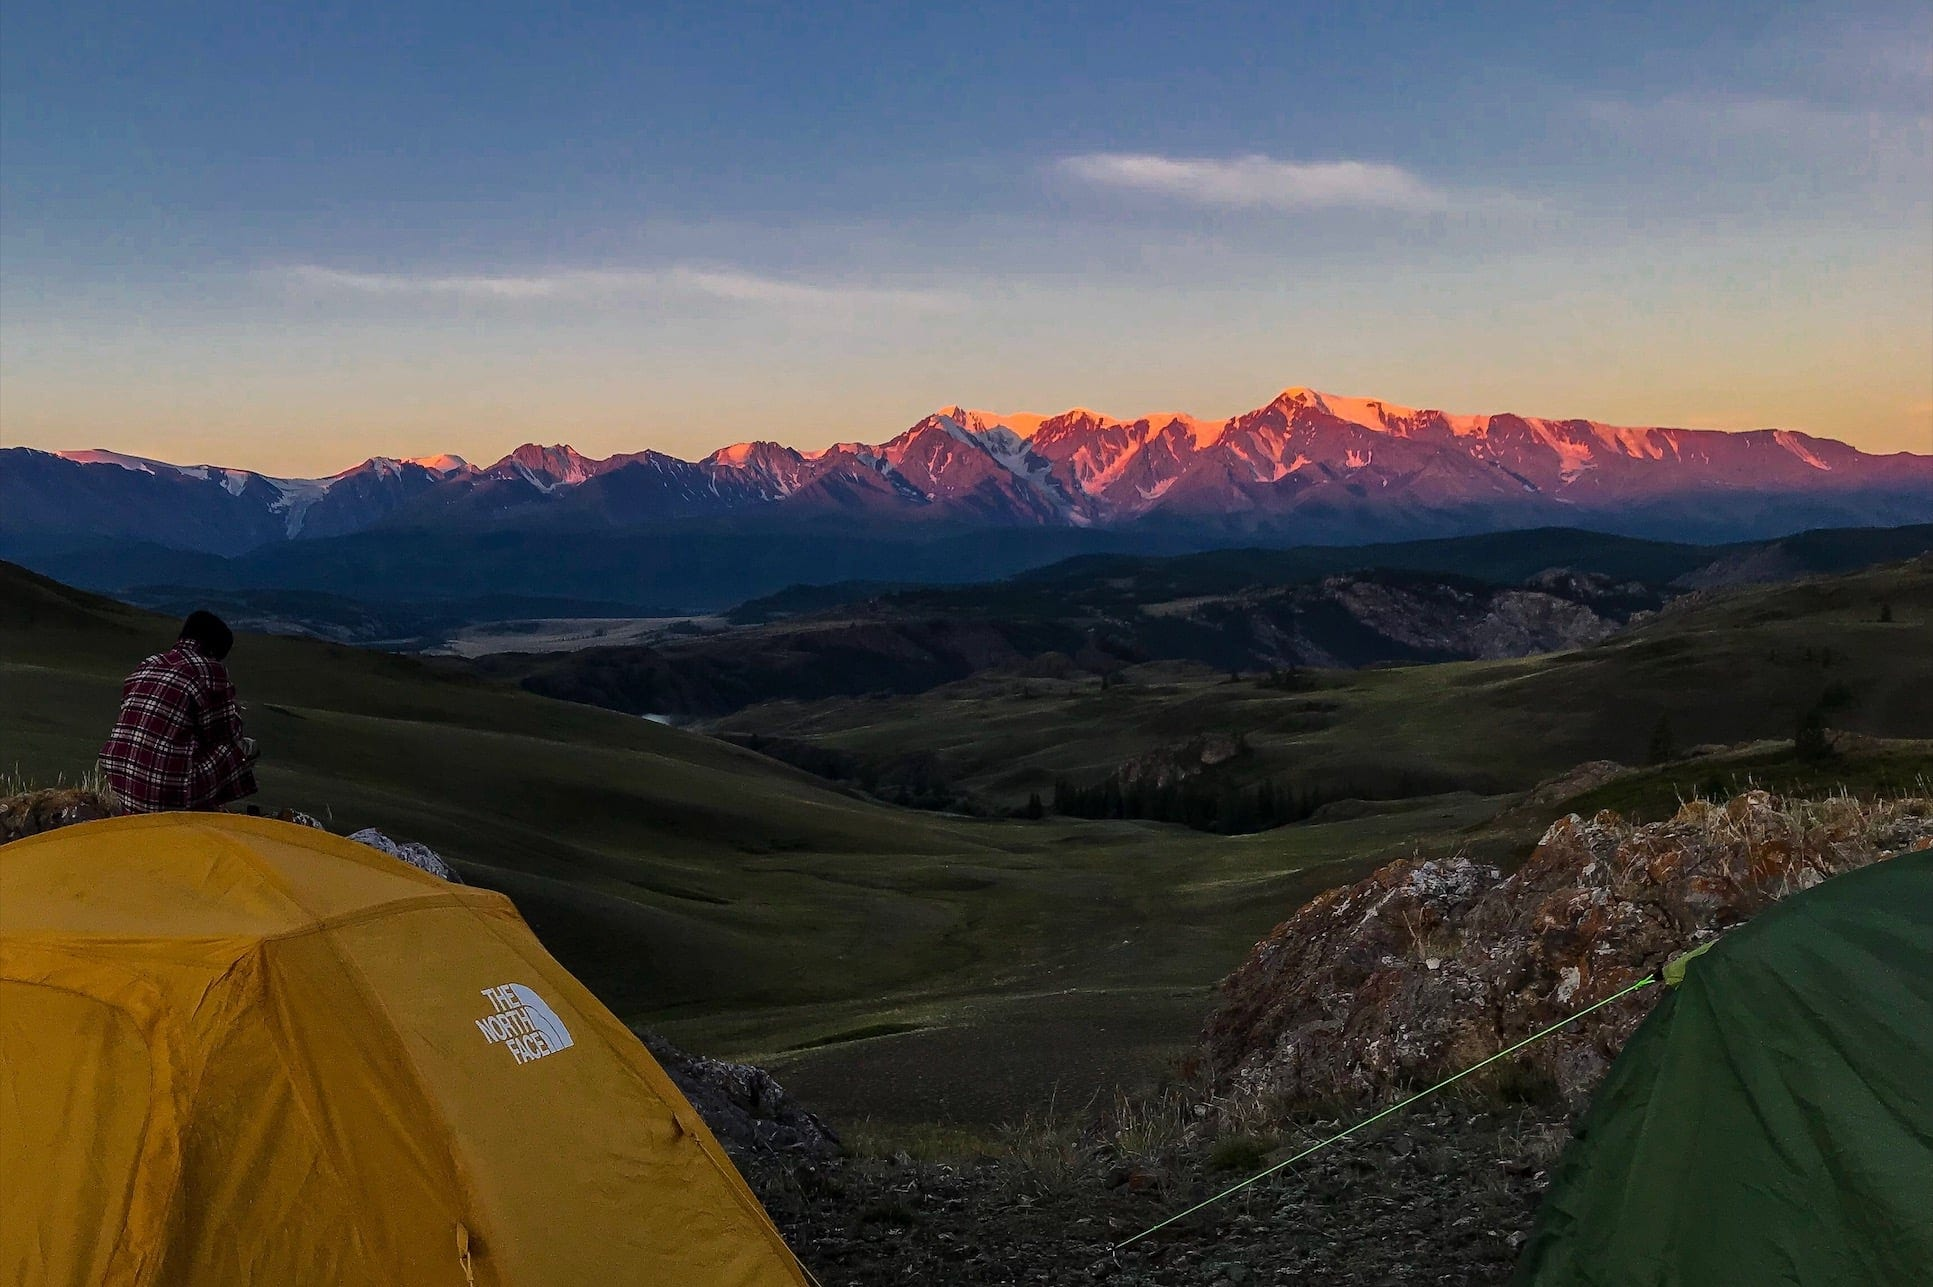 Altai camping in the mountains